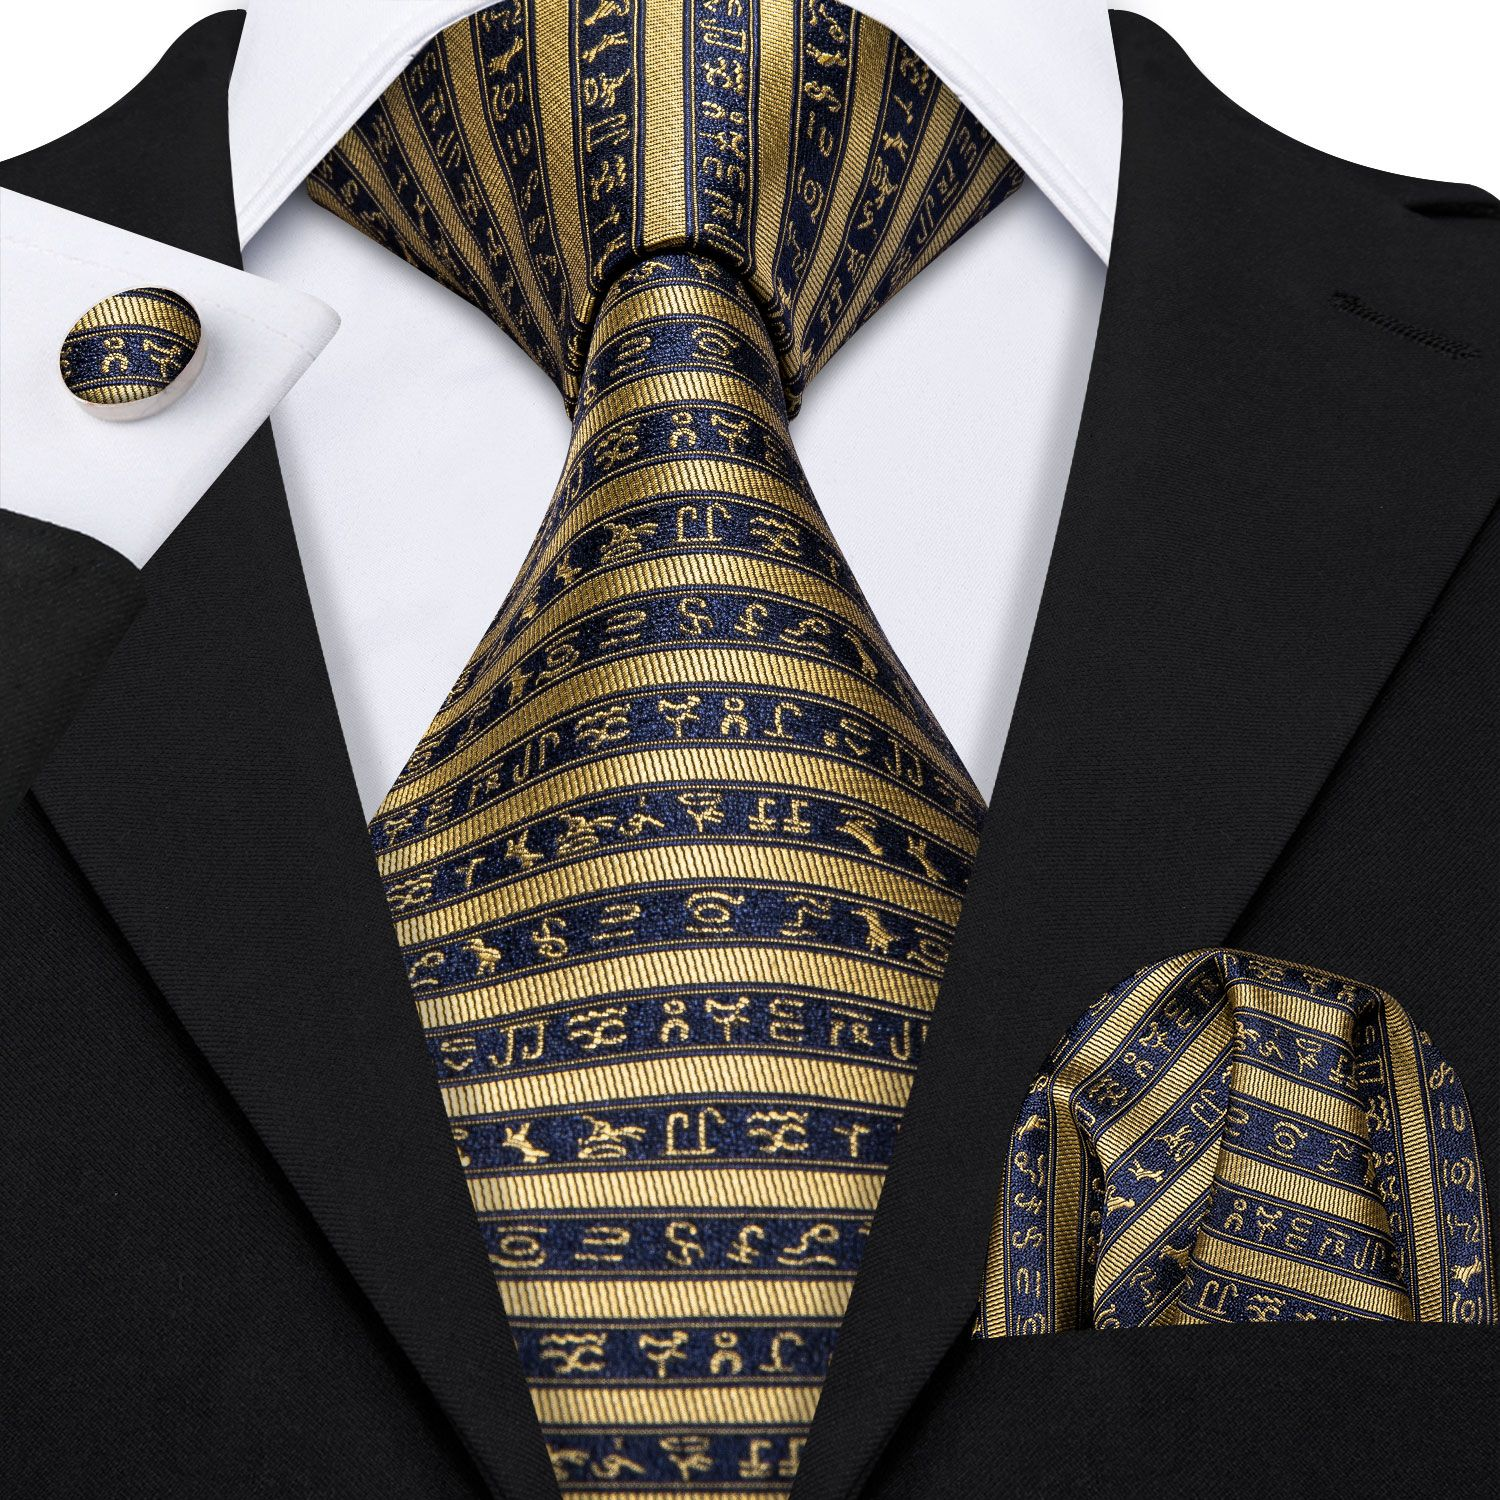 Classical Zebra Striped Tie For Mens Silk Necktie Hanky Gift Box Set Jacquard Men Tie Gold Black Men Tie Set Barry.Wang LS-5173